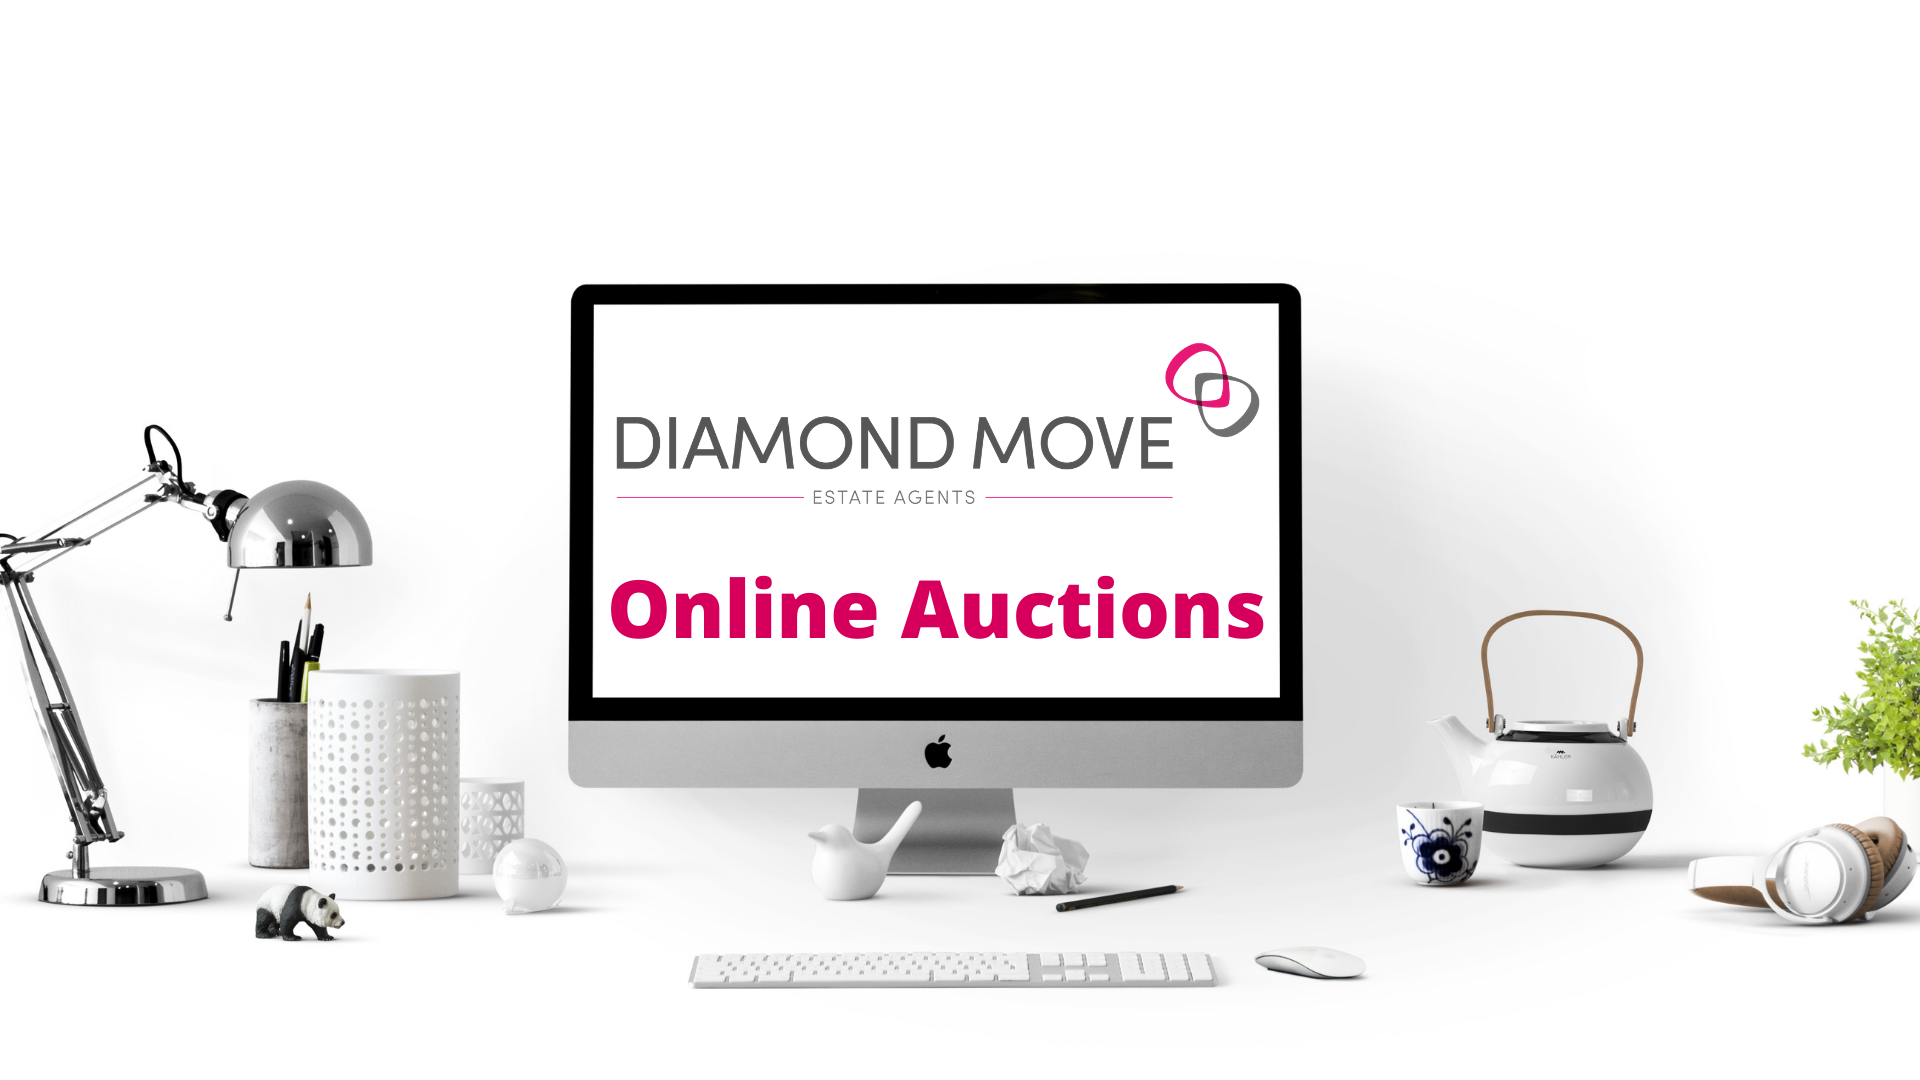 Online Auctions with Diamond Move